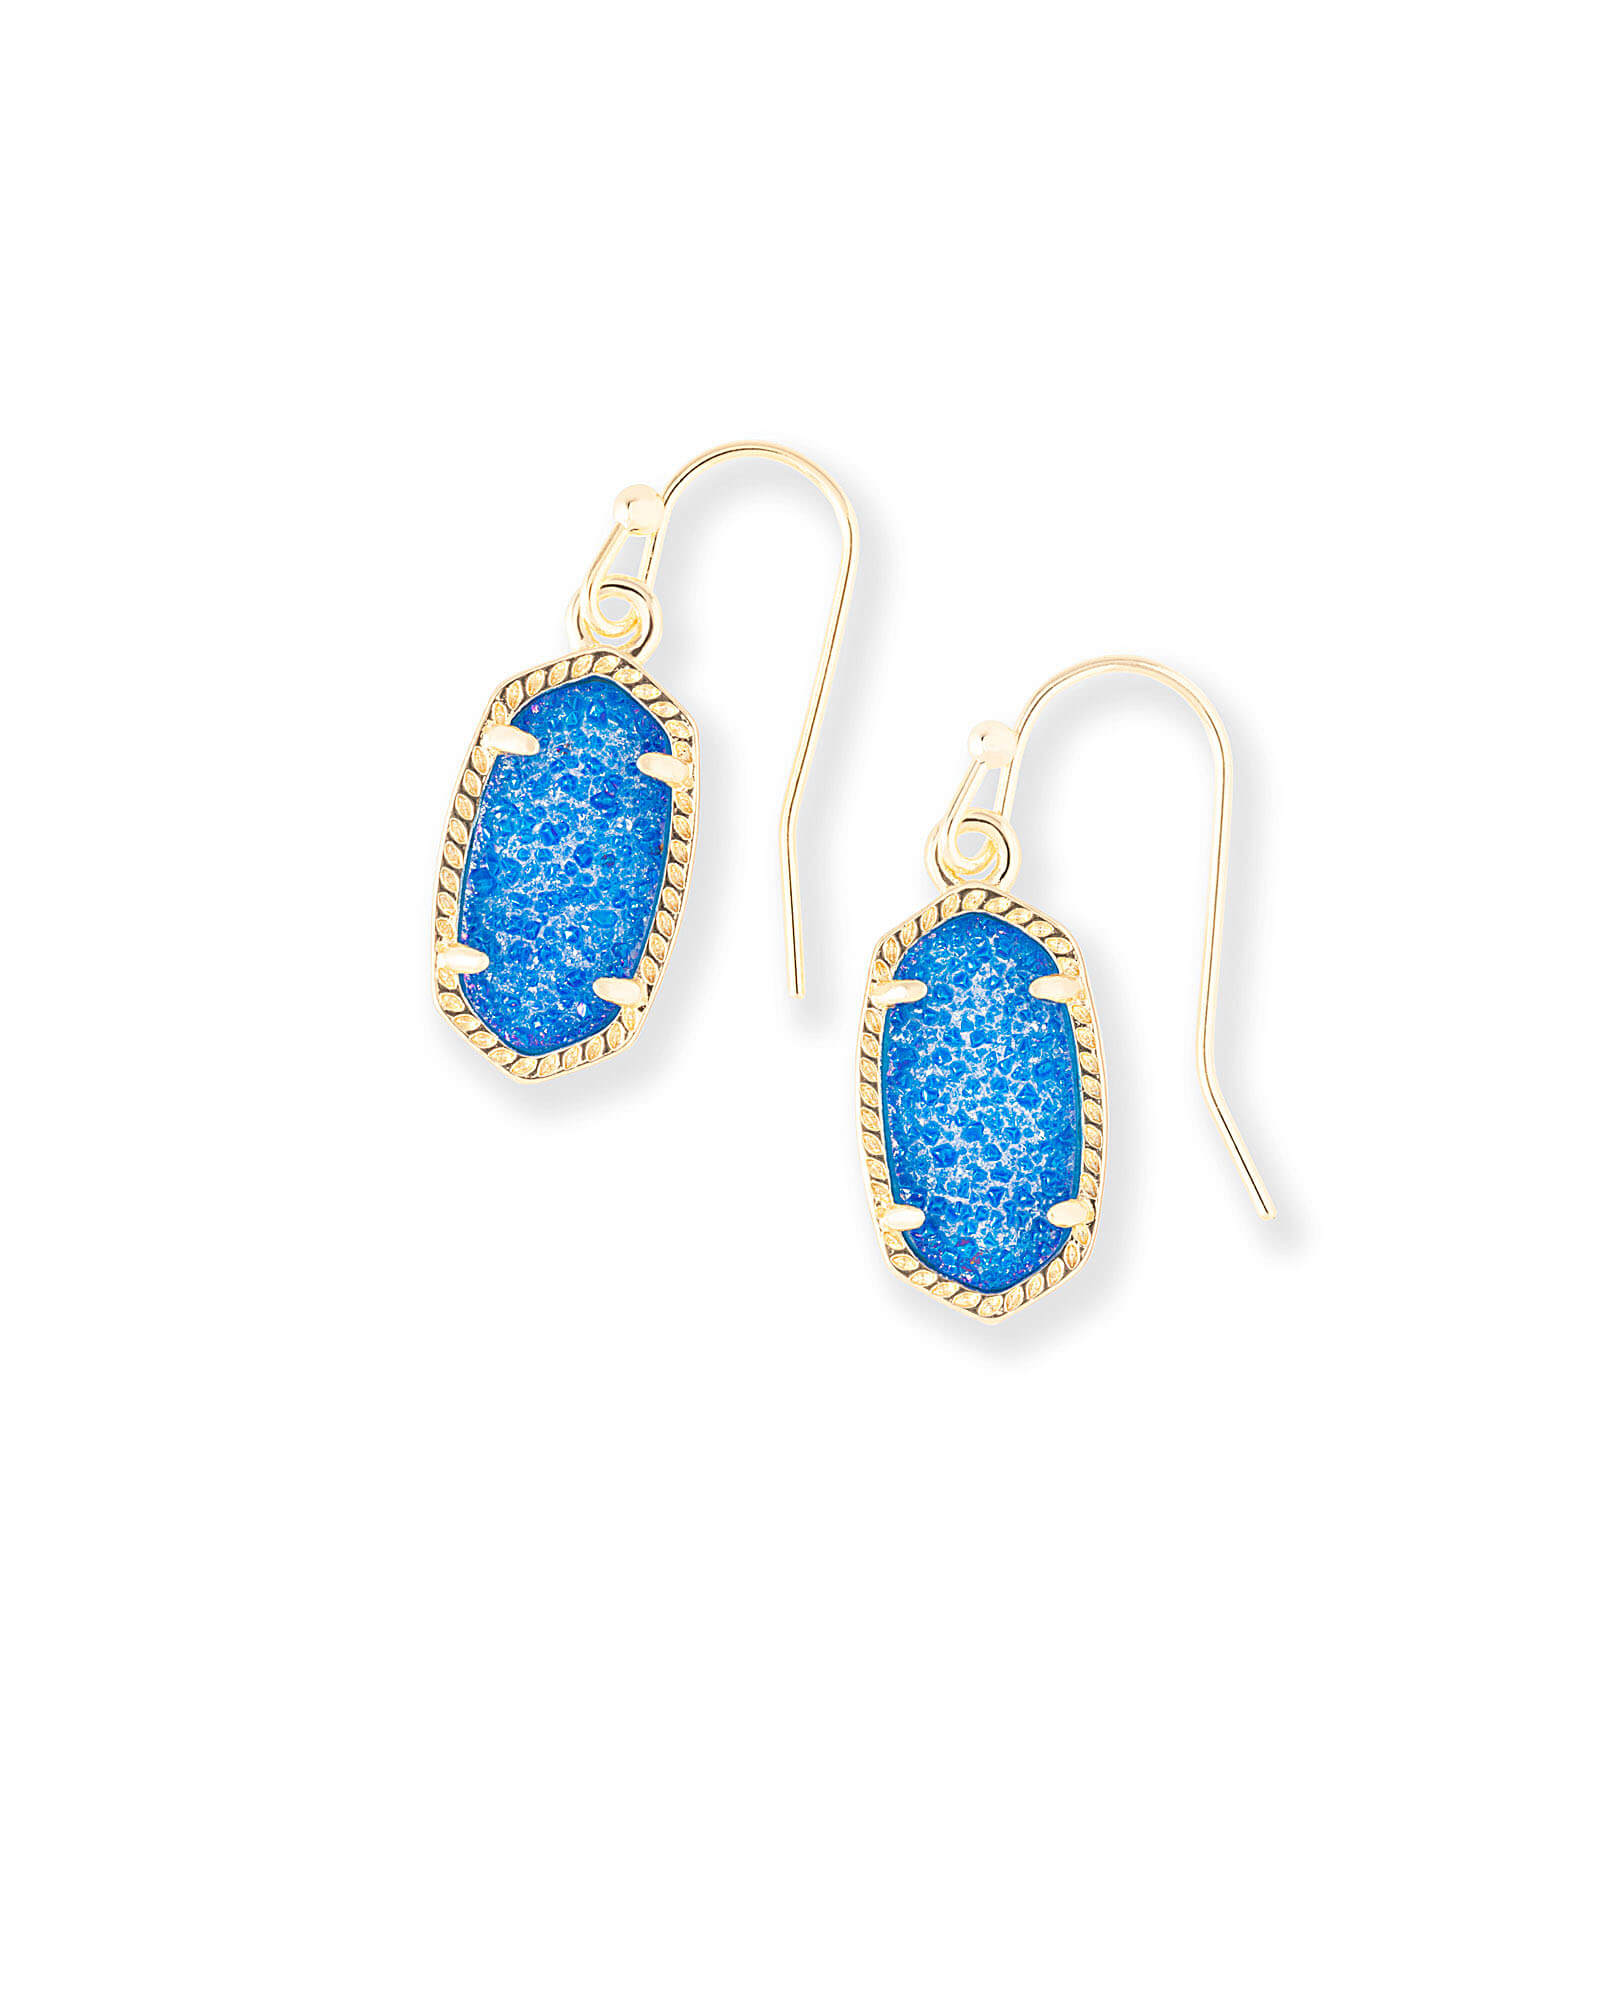 Lee Gold Drop Earrings in Cobalt Drusy